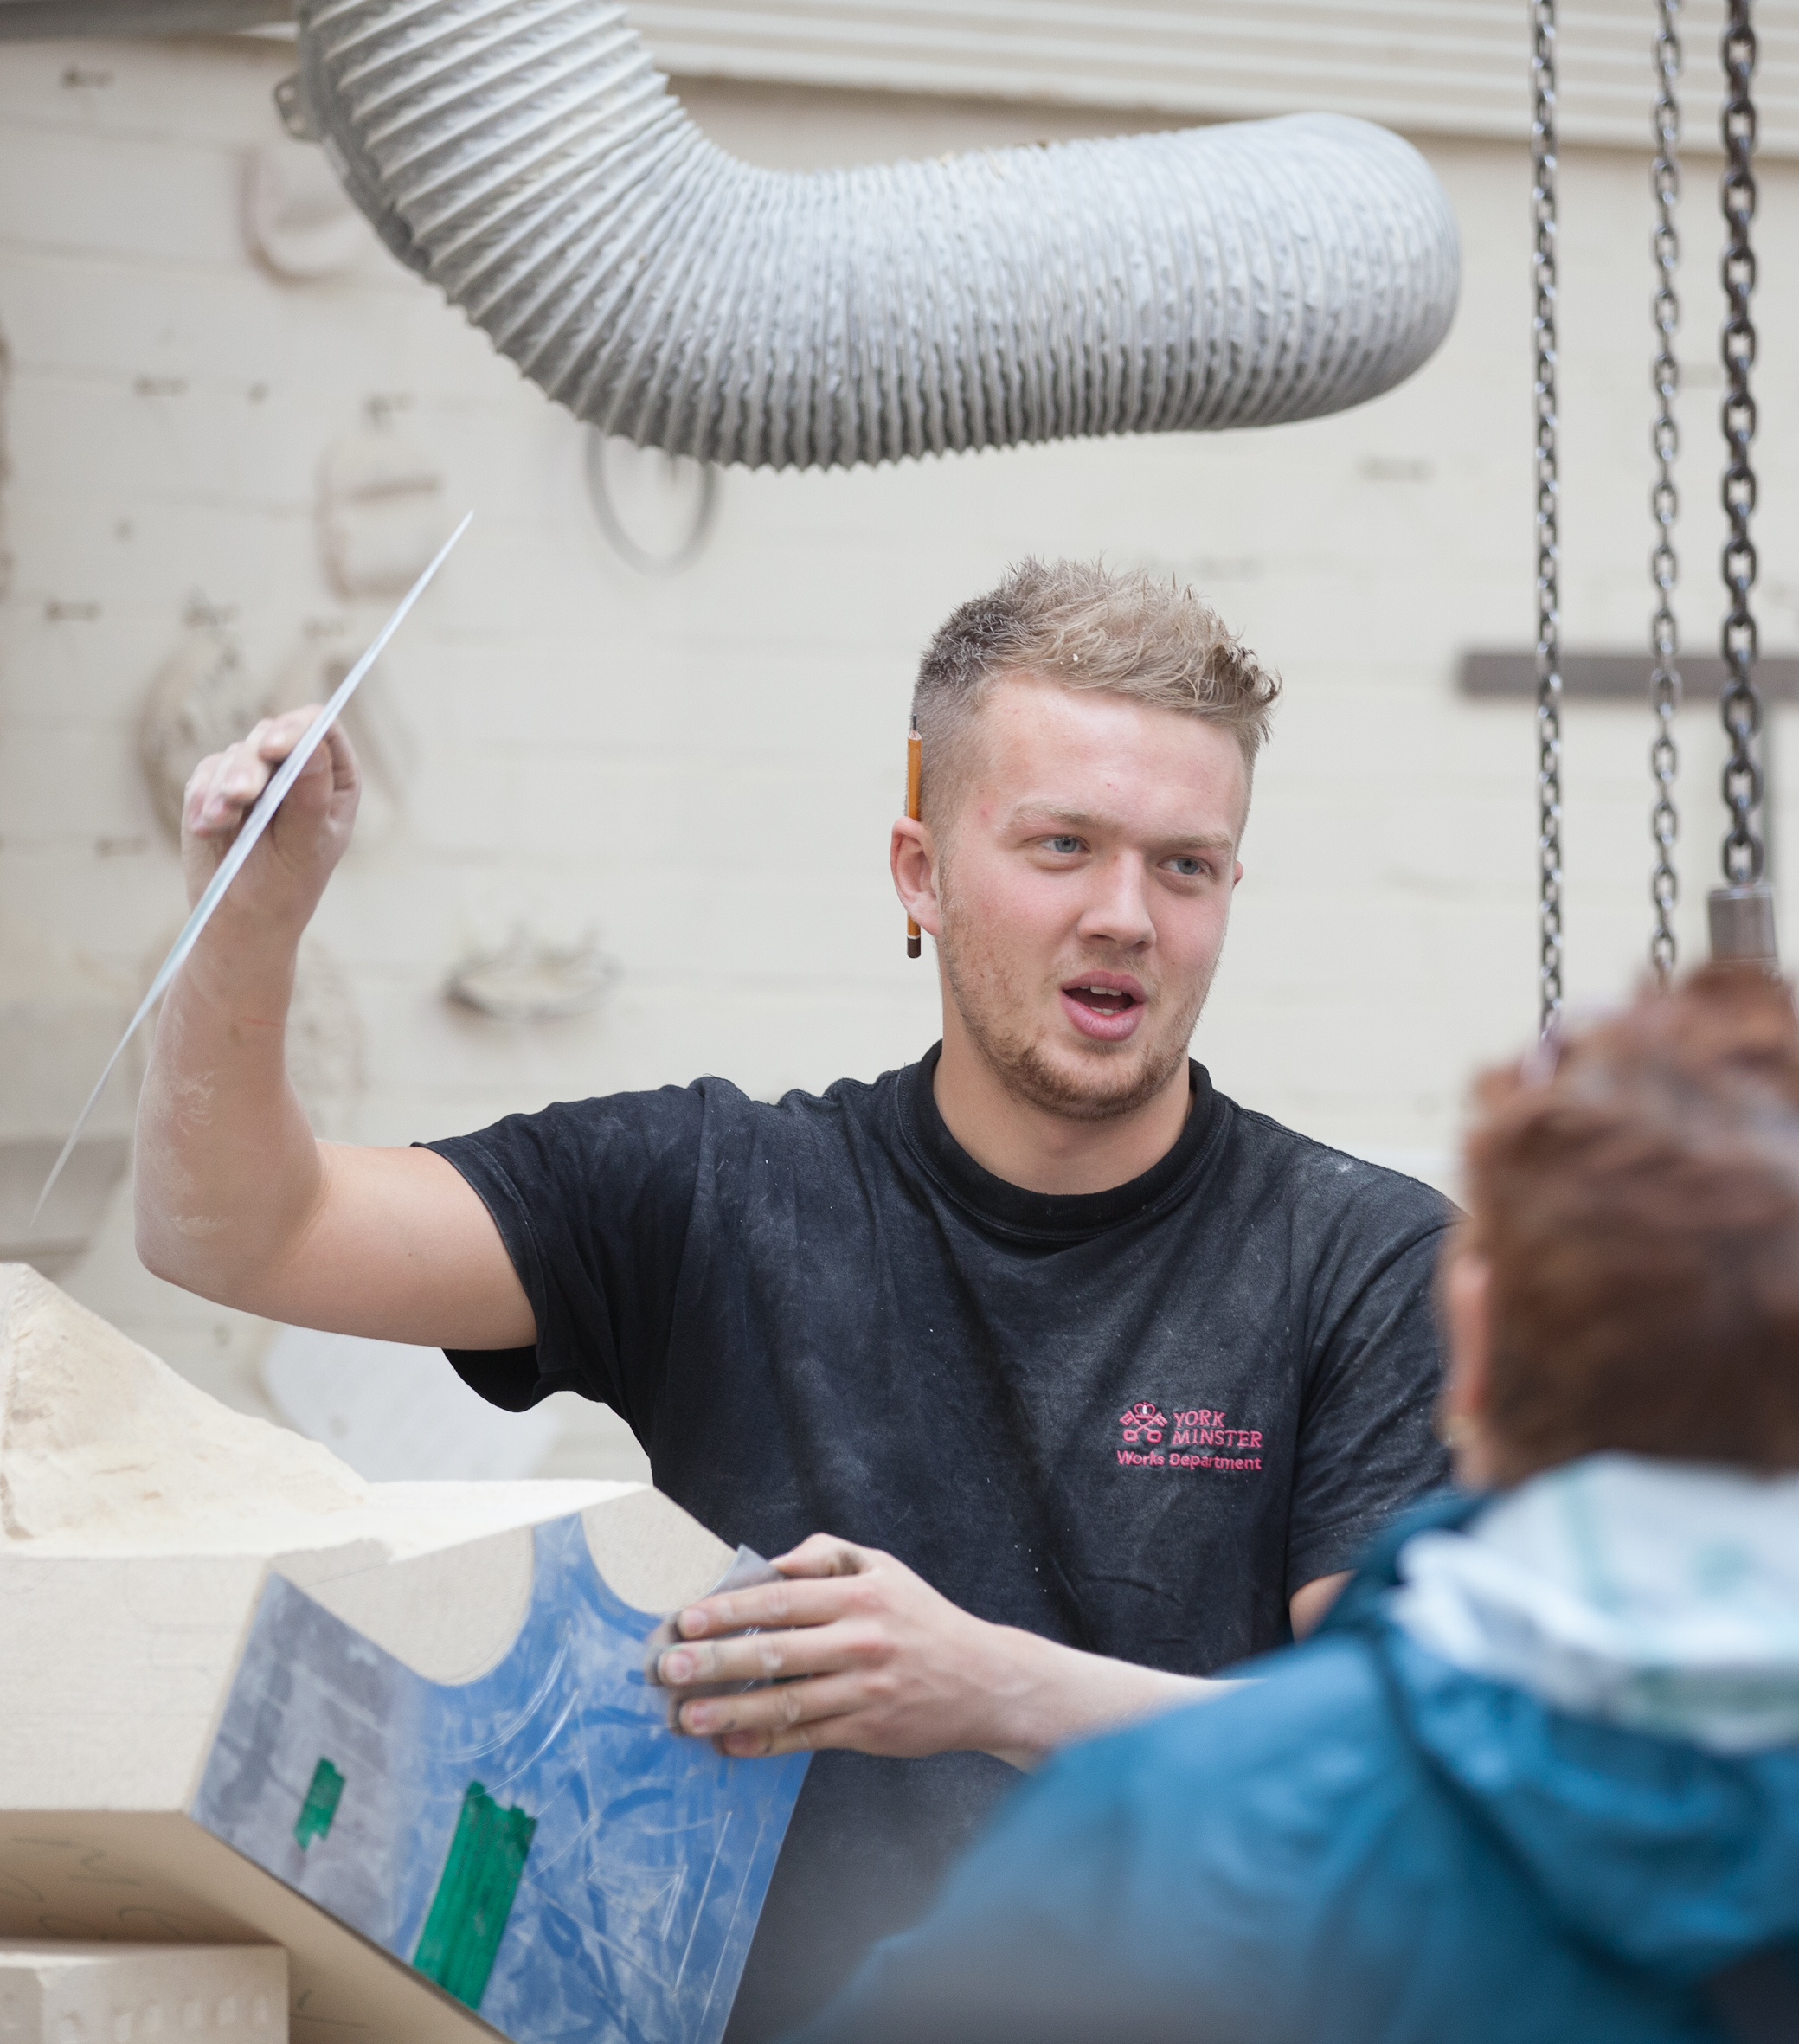 Trainee stonemason, Sam Turner